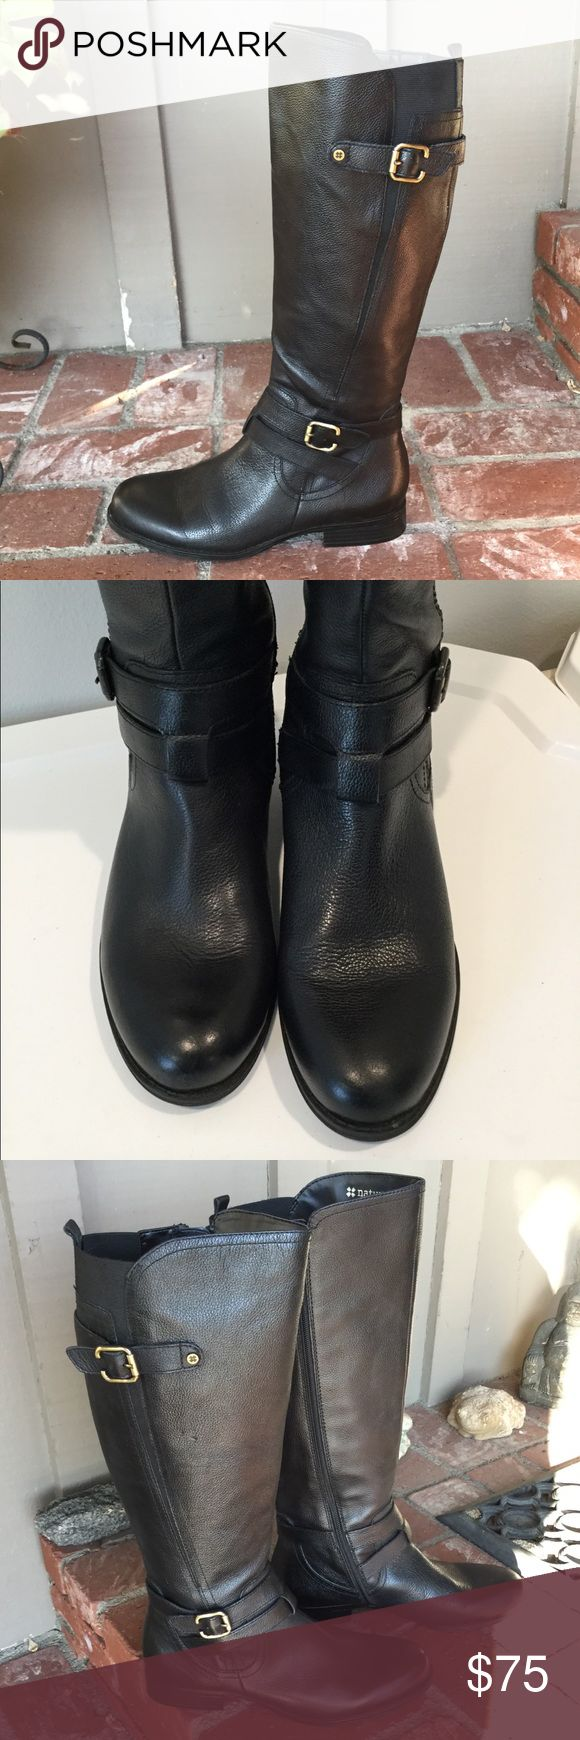 Naturalized Boots In great condition, only worn twice. Paid $198, my loss your gain.💖 They are a nice black tone & the leather is amazing. Does have gold buckles. Zippers work great. Has slight indentations, not really noticeable, it was like this when purchased. Refer to 3rd pic. Has stretch band at the calves which is great.  Tag says 9W.  These are great if you're a size 9 because you can wear with thick sock or if you need that extra wiggle room as a size 9W. Either way these boots are…